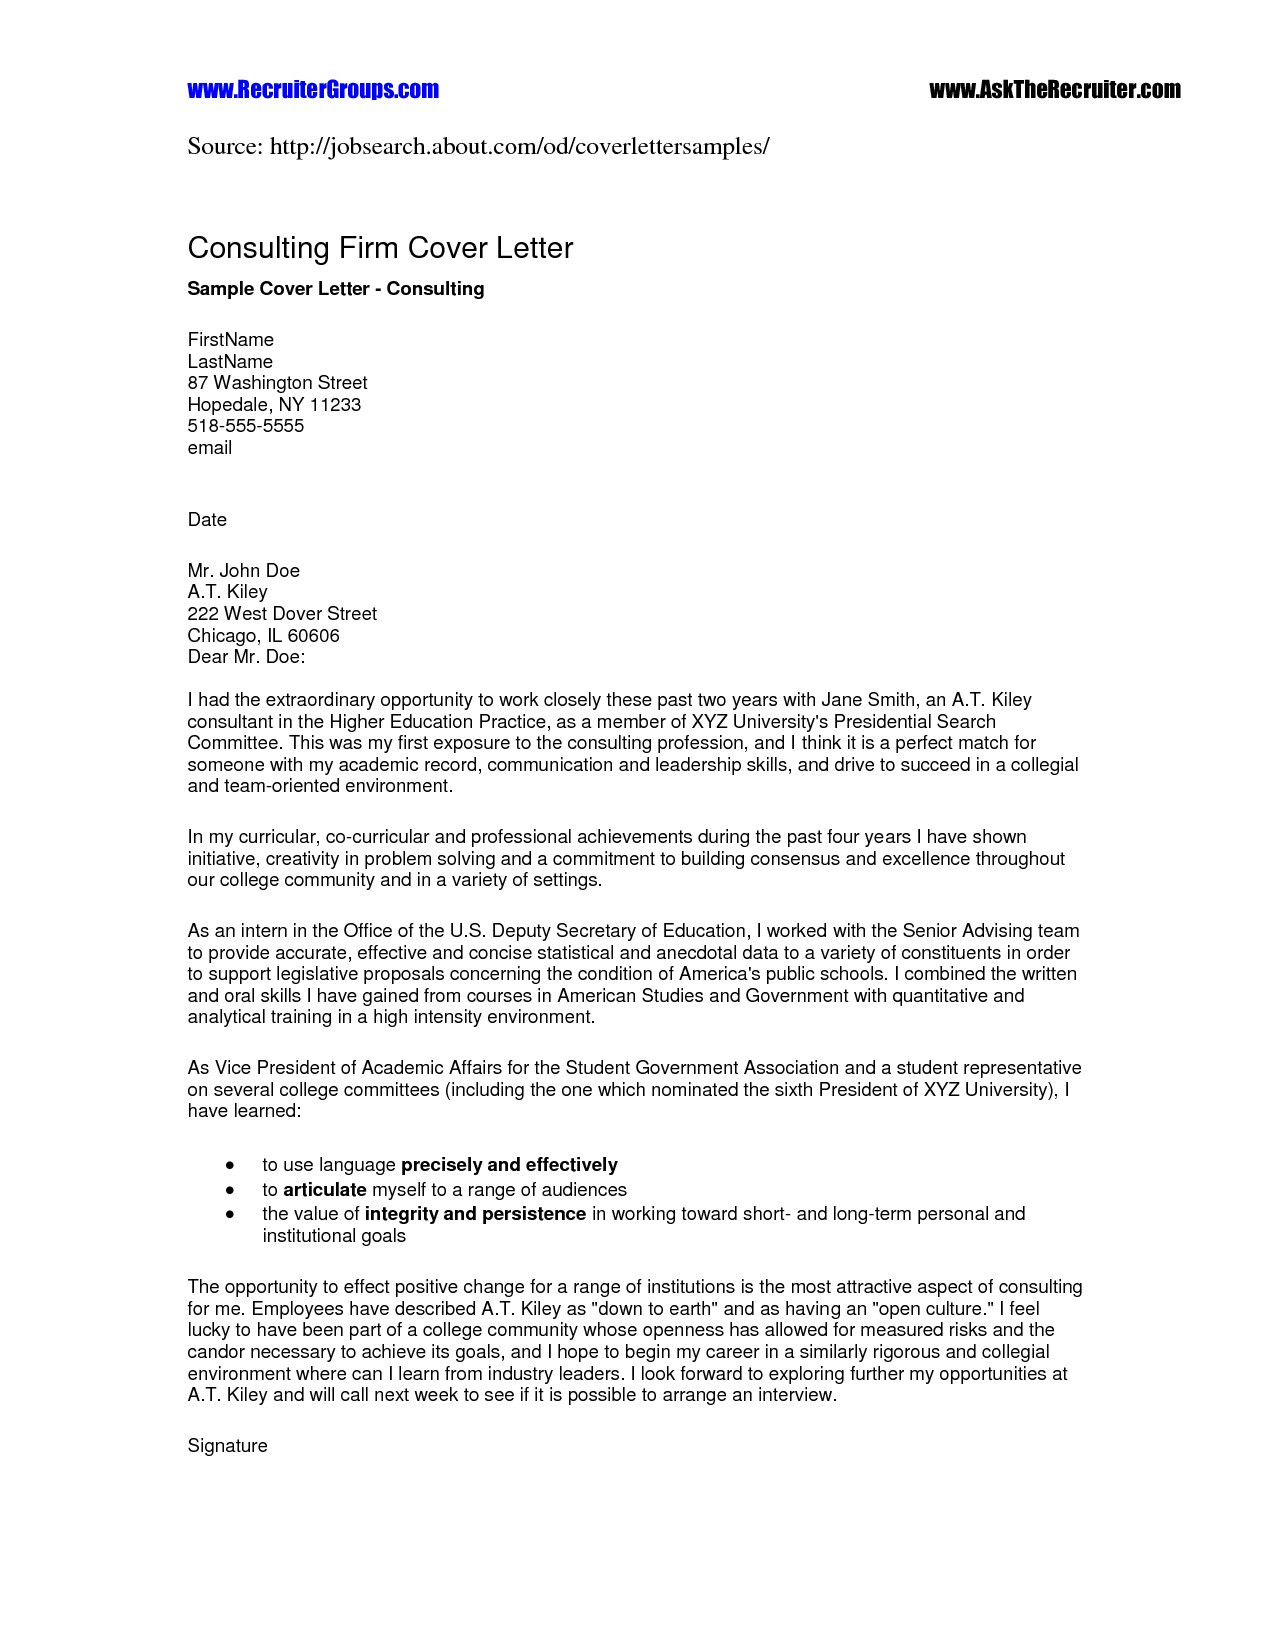 Medical Consult Letter Template Collection